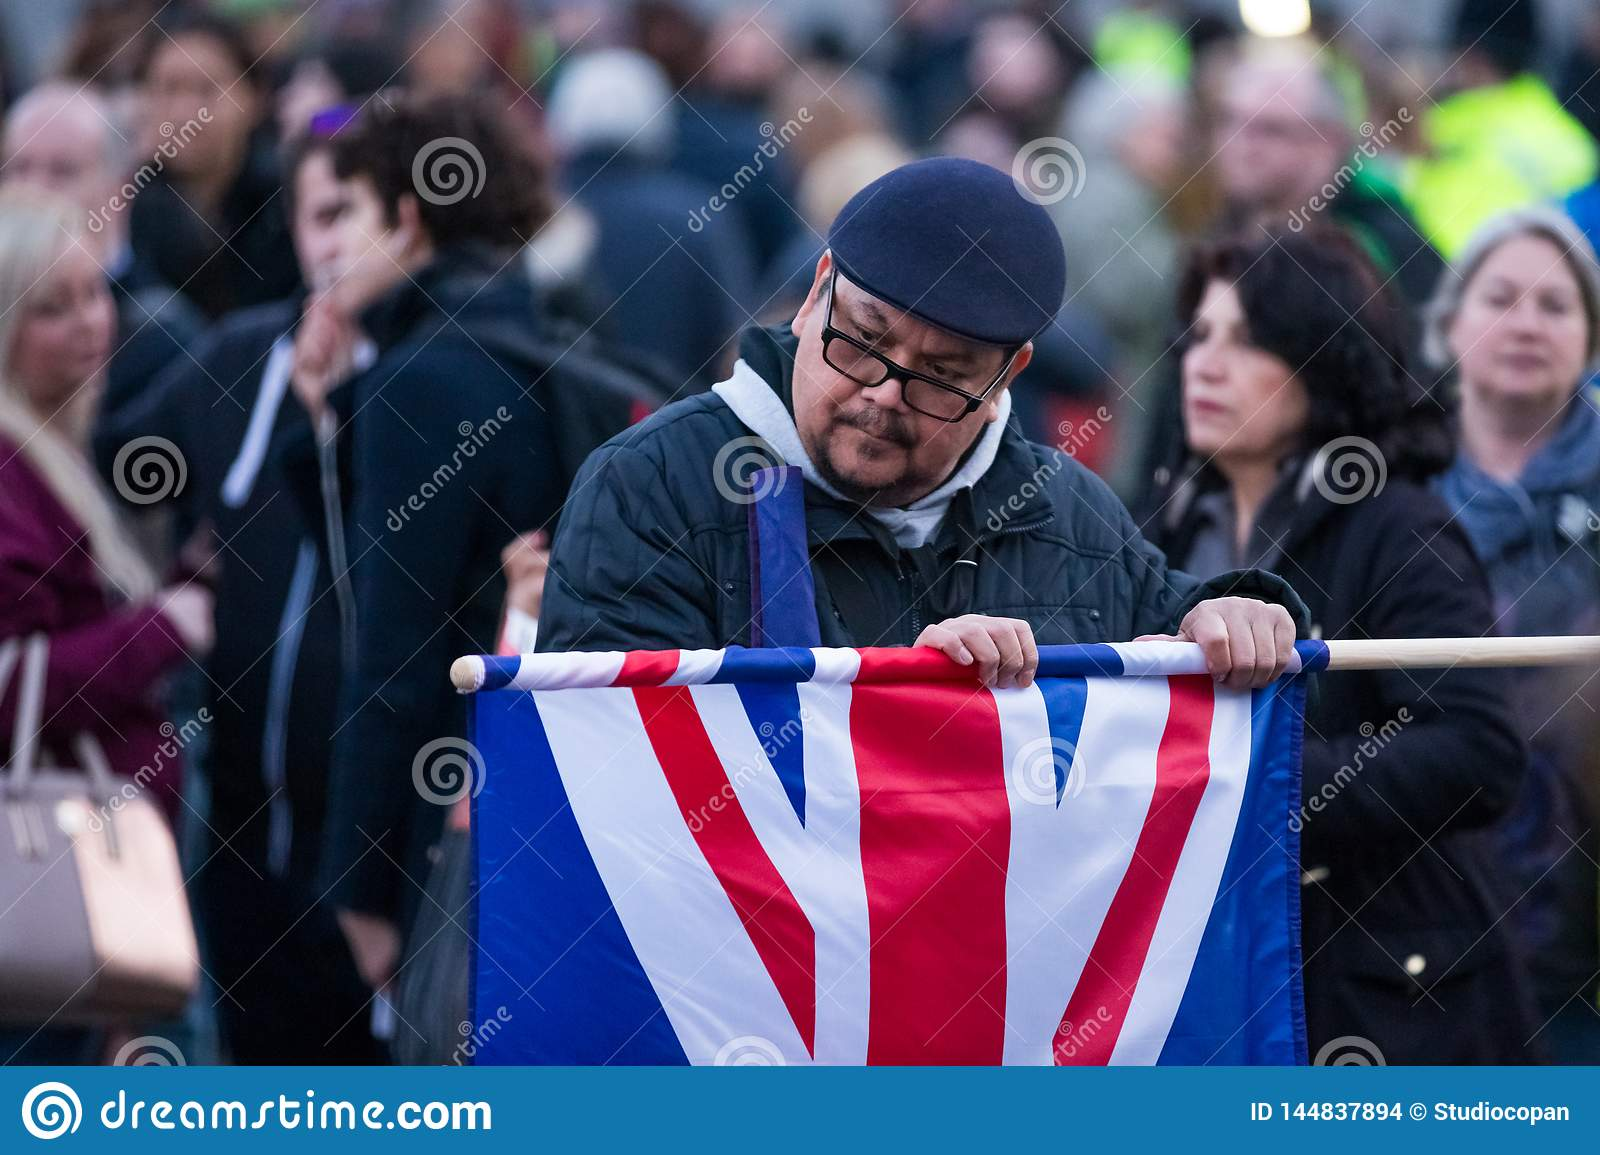 Man Unfolding Union Jack Flag in Trafalgar Square Crowd